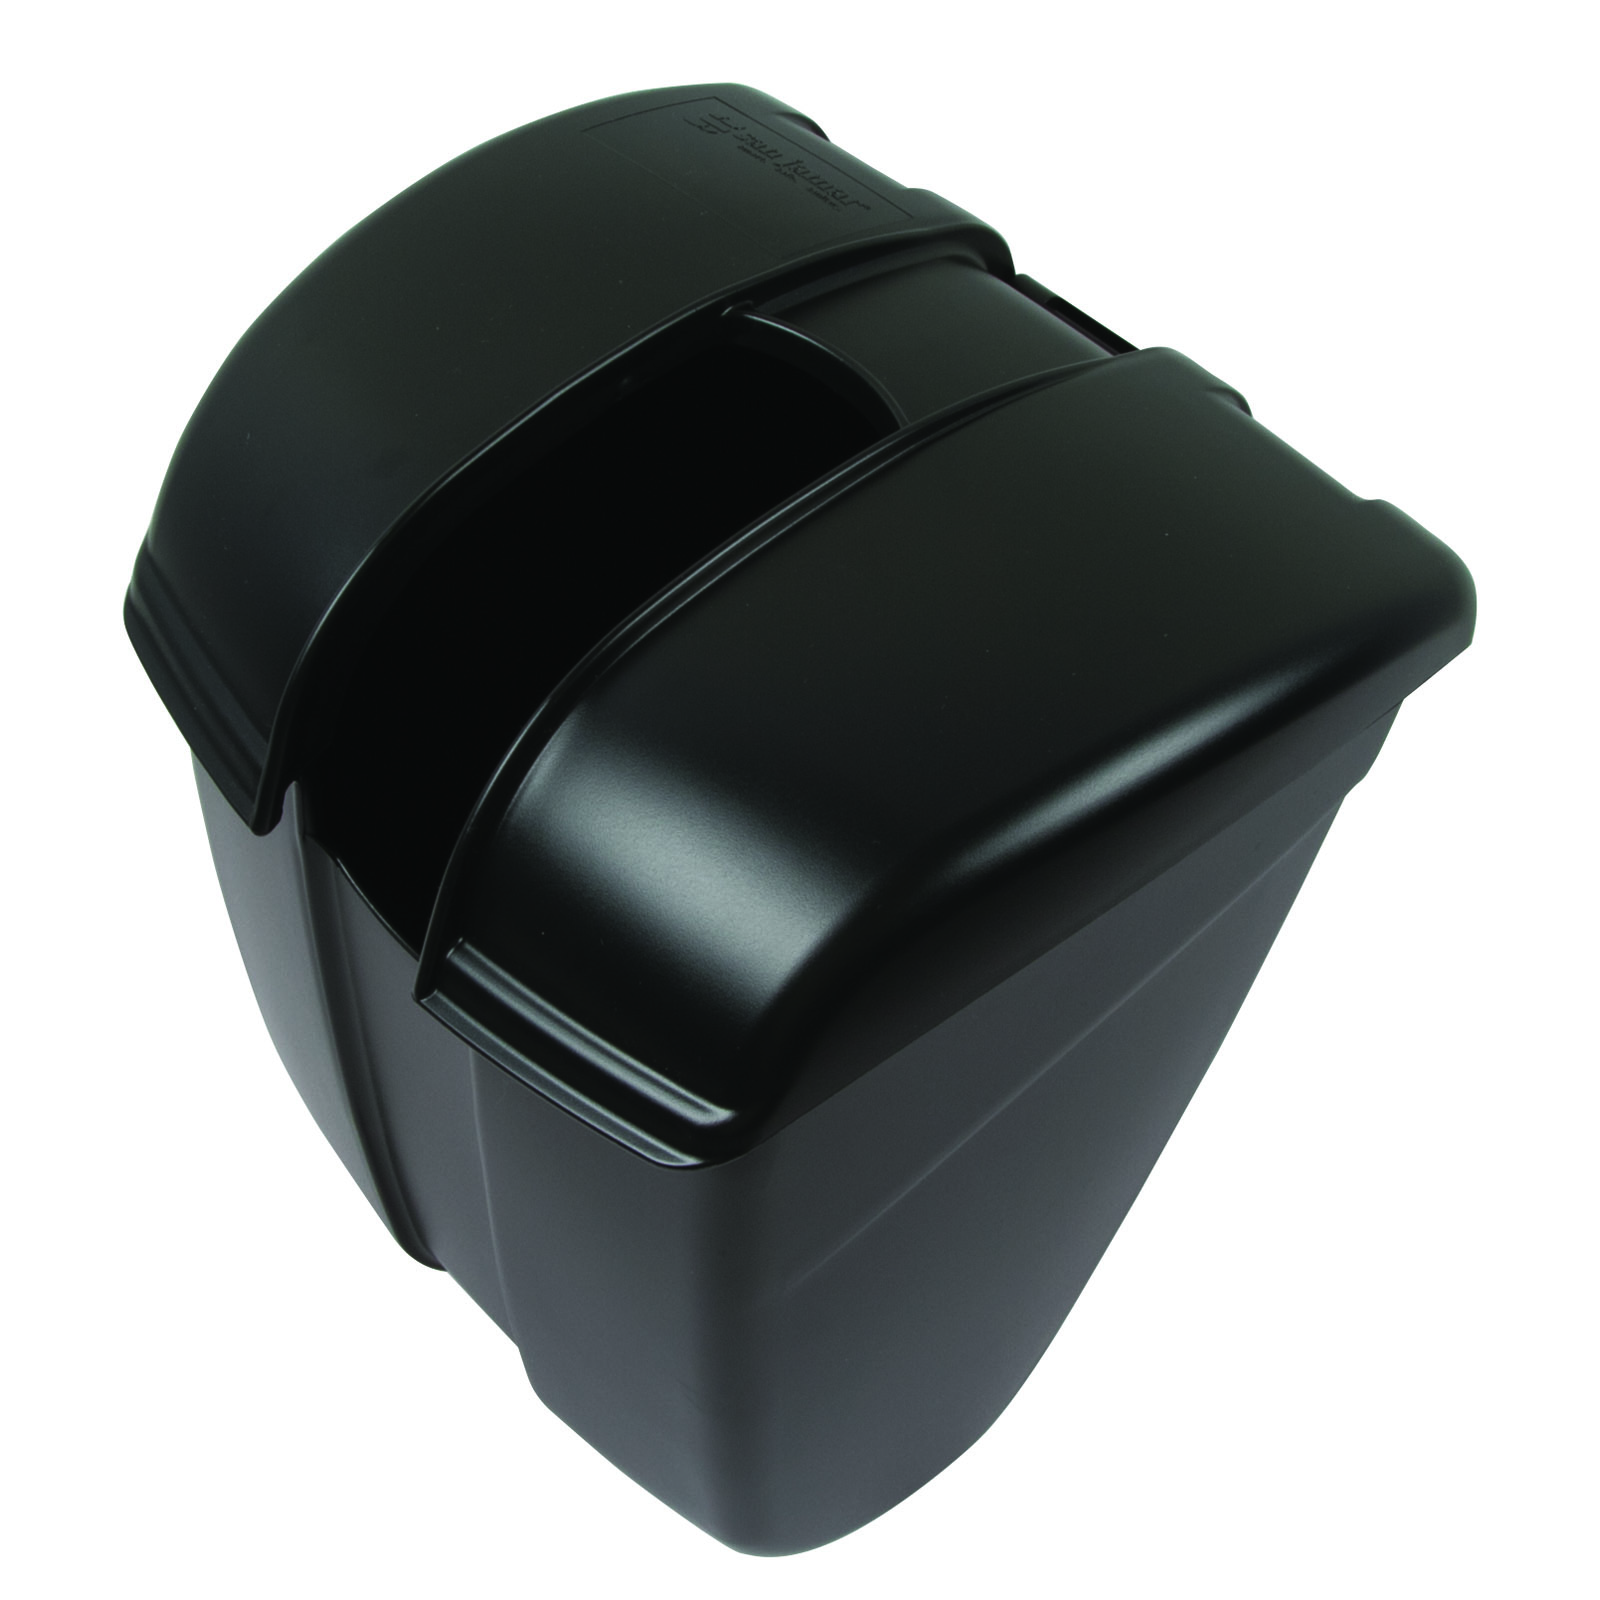 San Jamar SI2000BK scoop holder